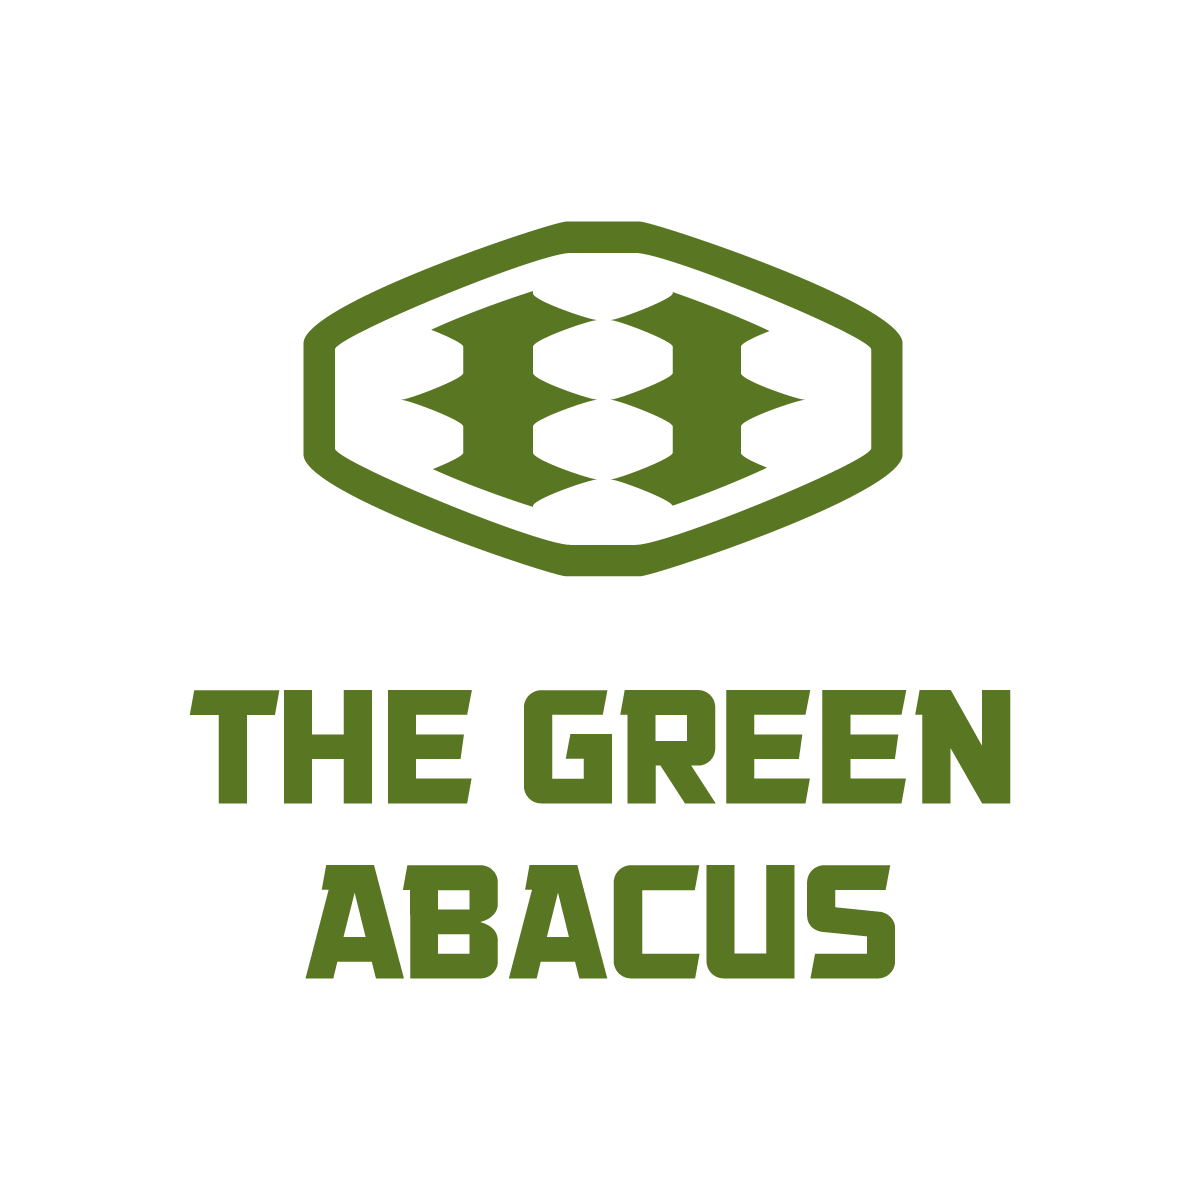 Greenabacuslogo_largegreen